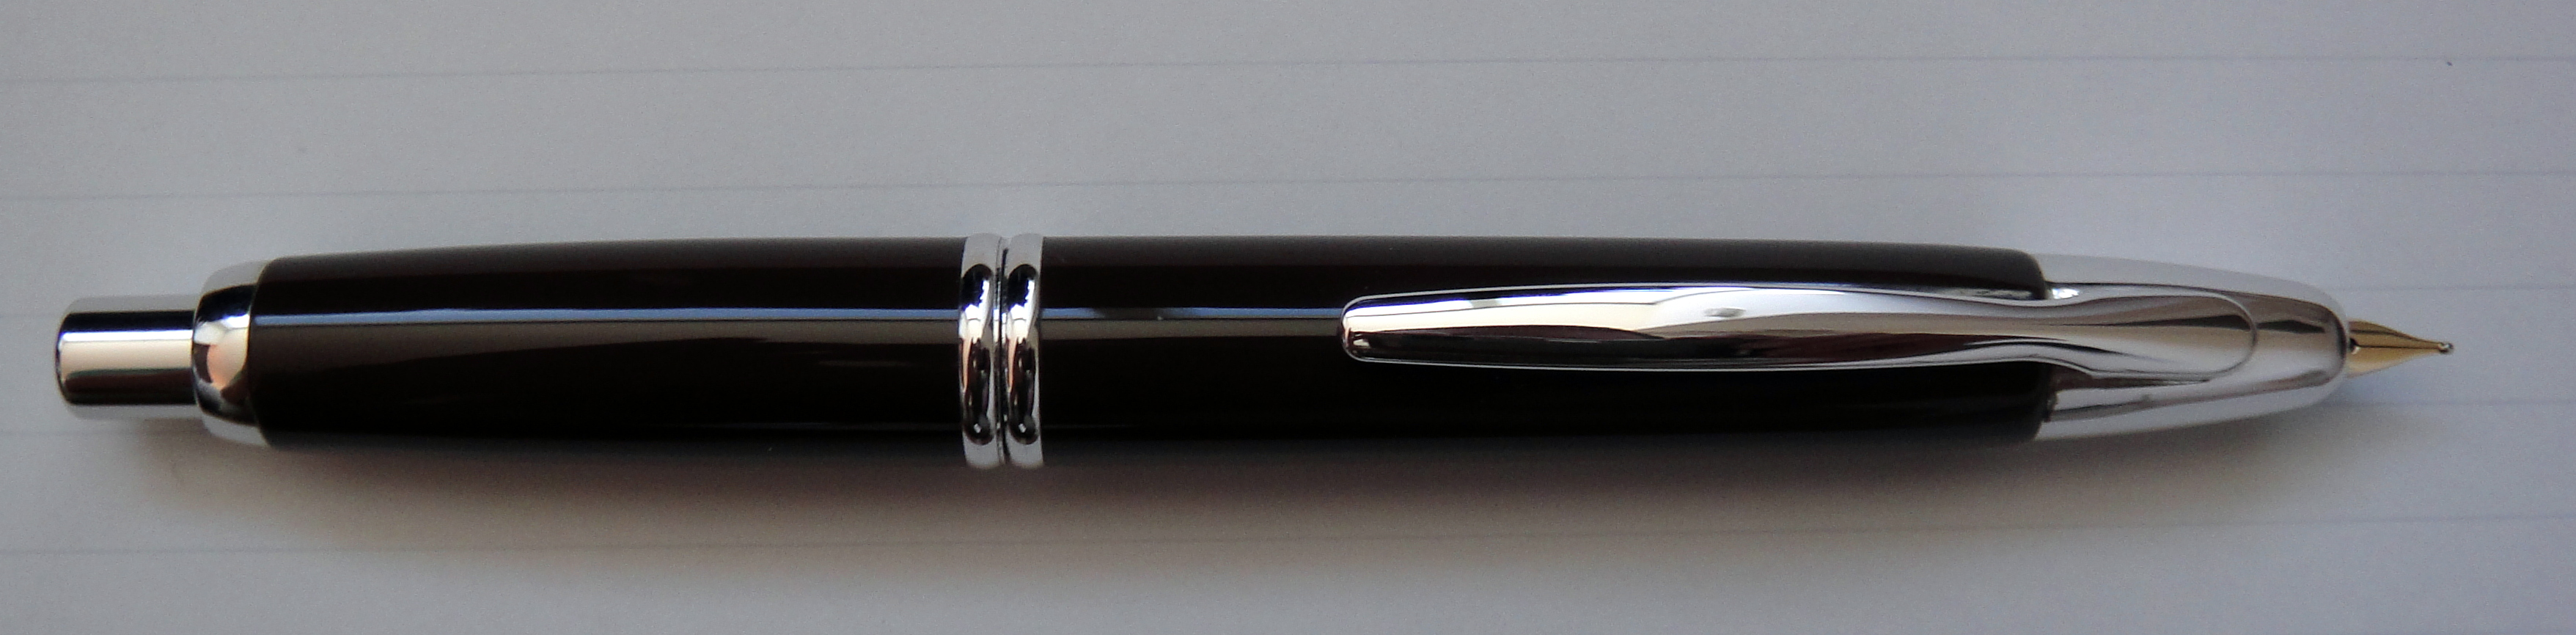 Current style Pilot Vanishing Pont with nib extended